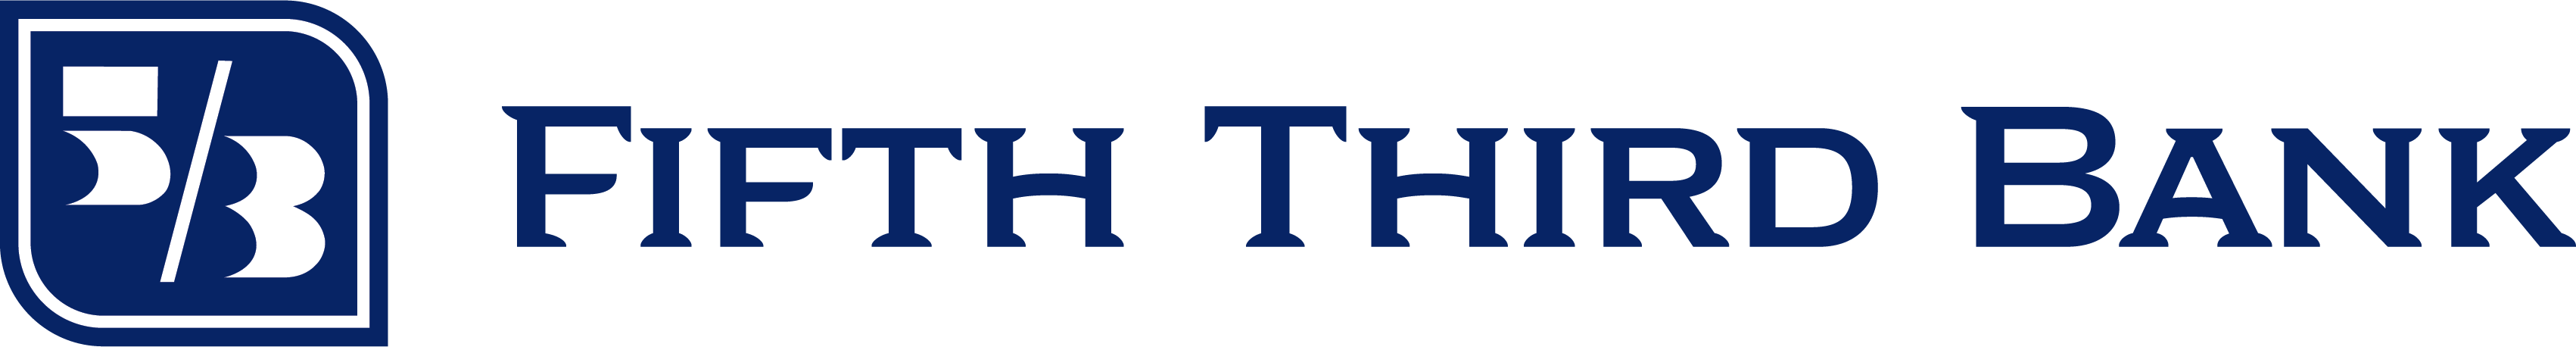 Fifth third bank logo clipart clip free library Fifth Third Bank | Small Business Advocacy Council clip free library